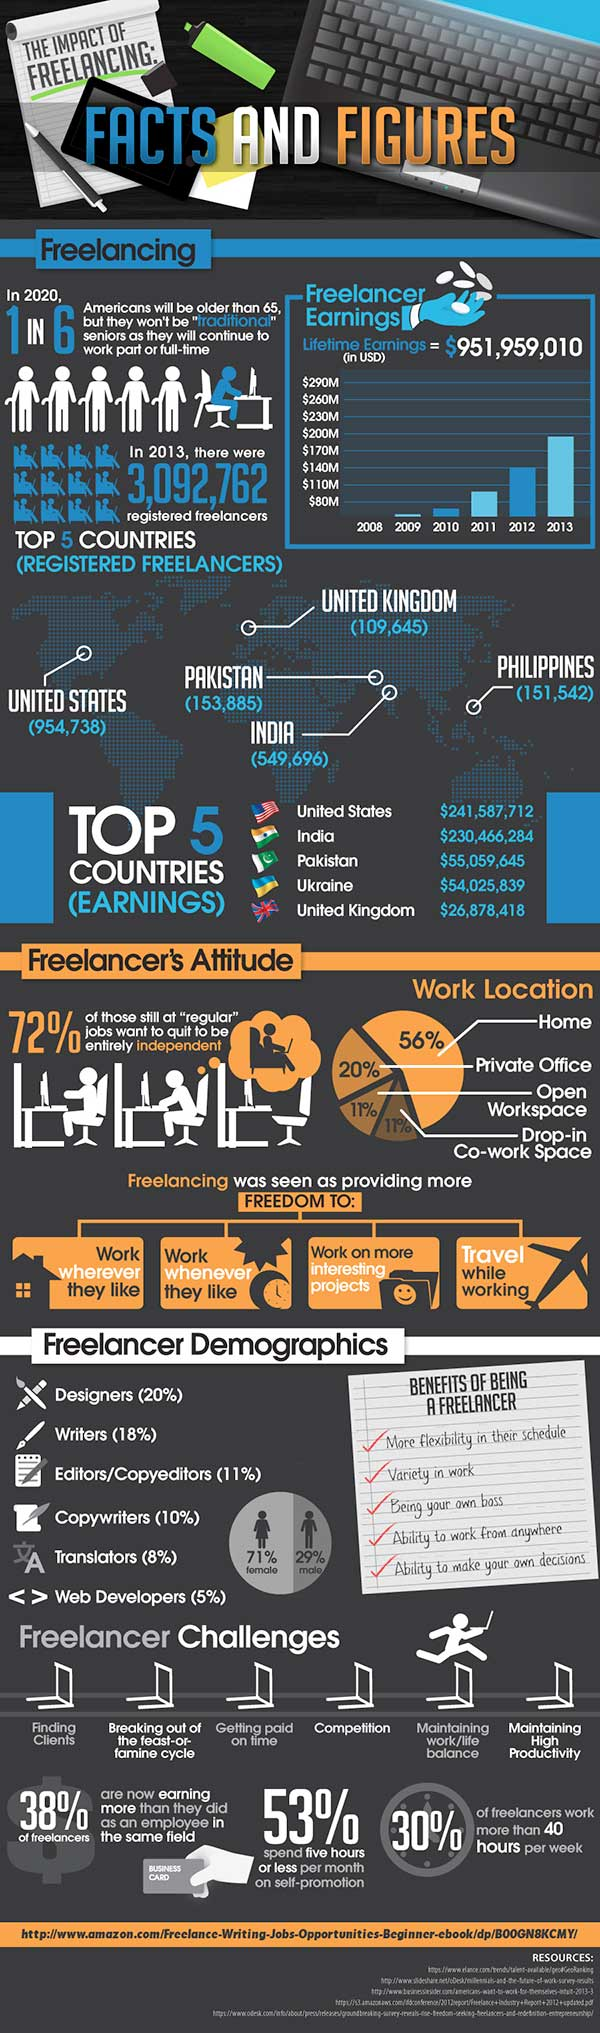 freelancing facts and income figures